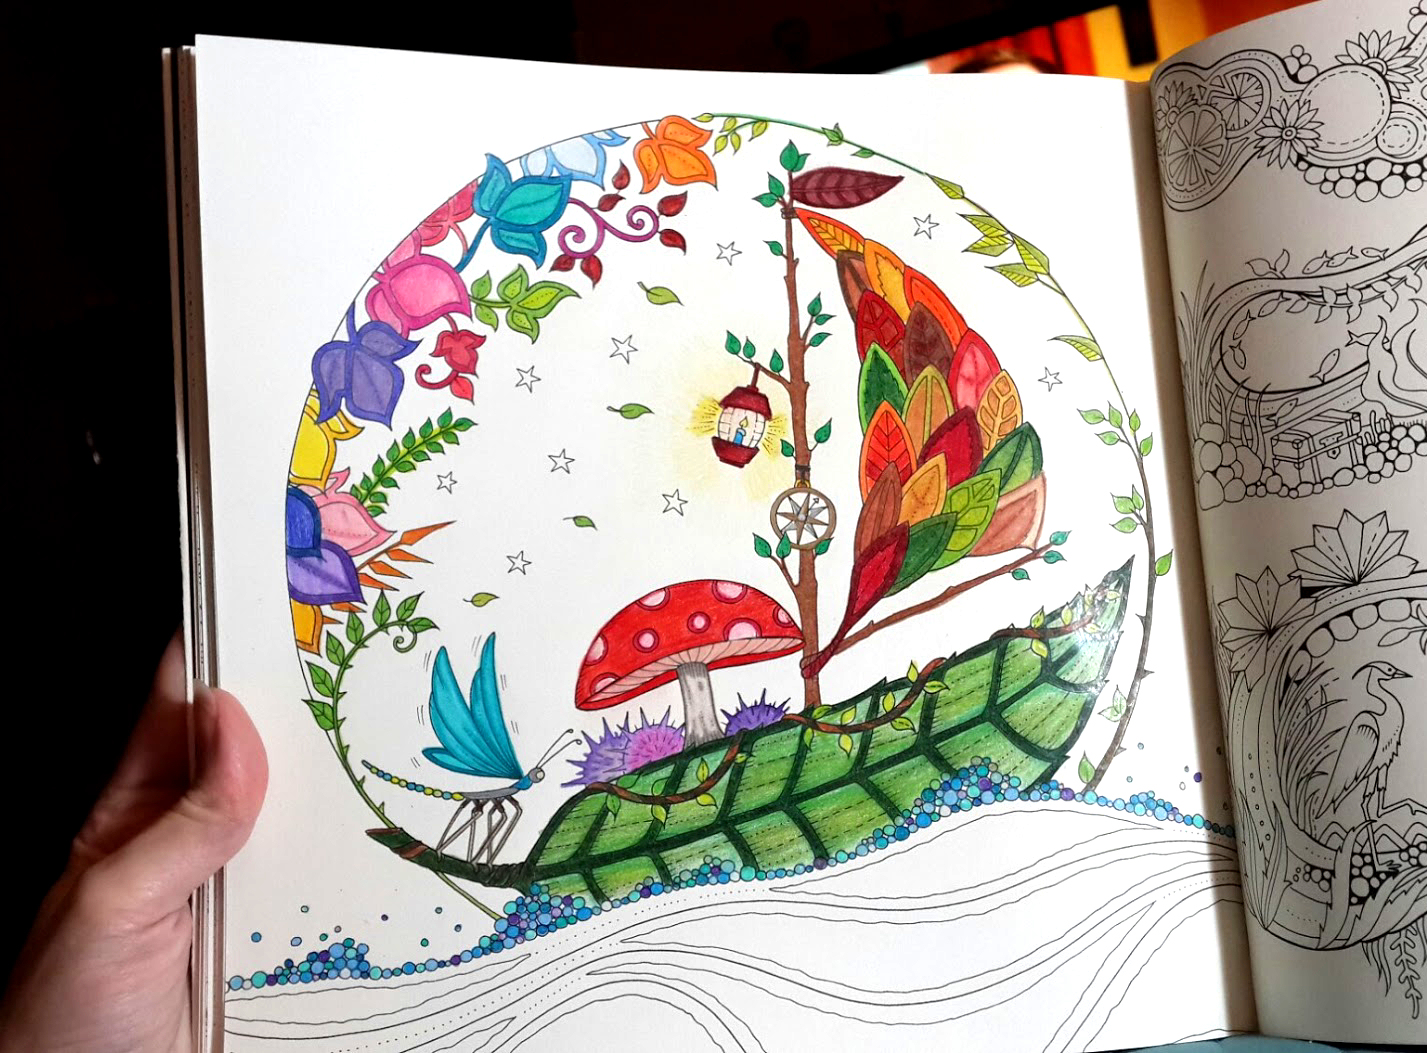 Enchanted forest coloring book website - Coloring In Progress Shot Of The Adult Coloring Book Page Featuring A Leaf Sailboat From The